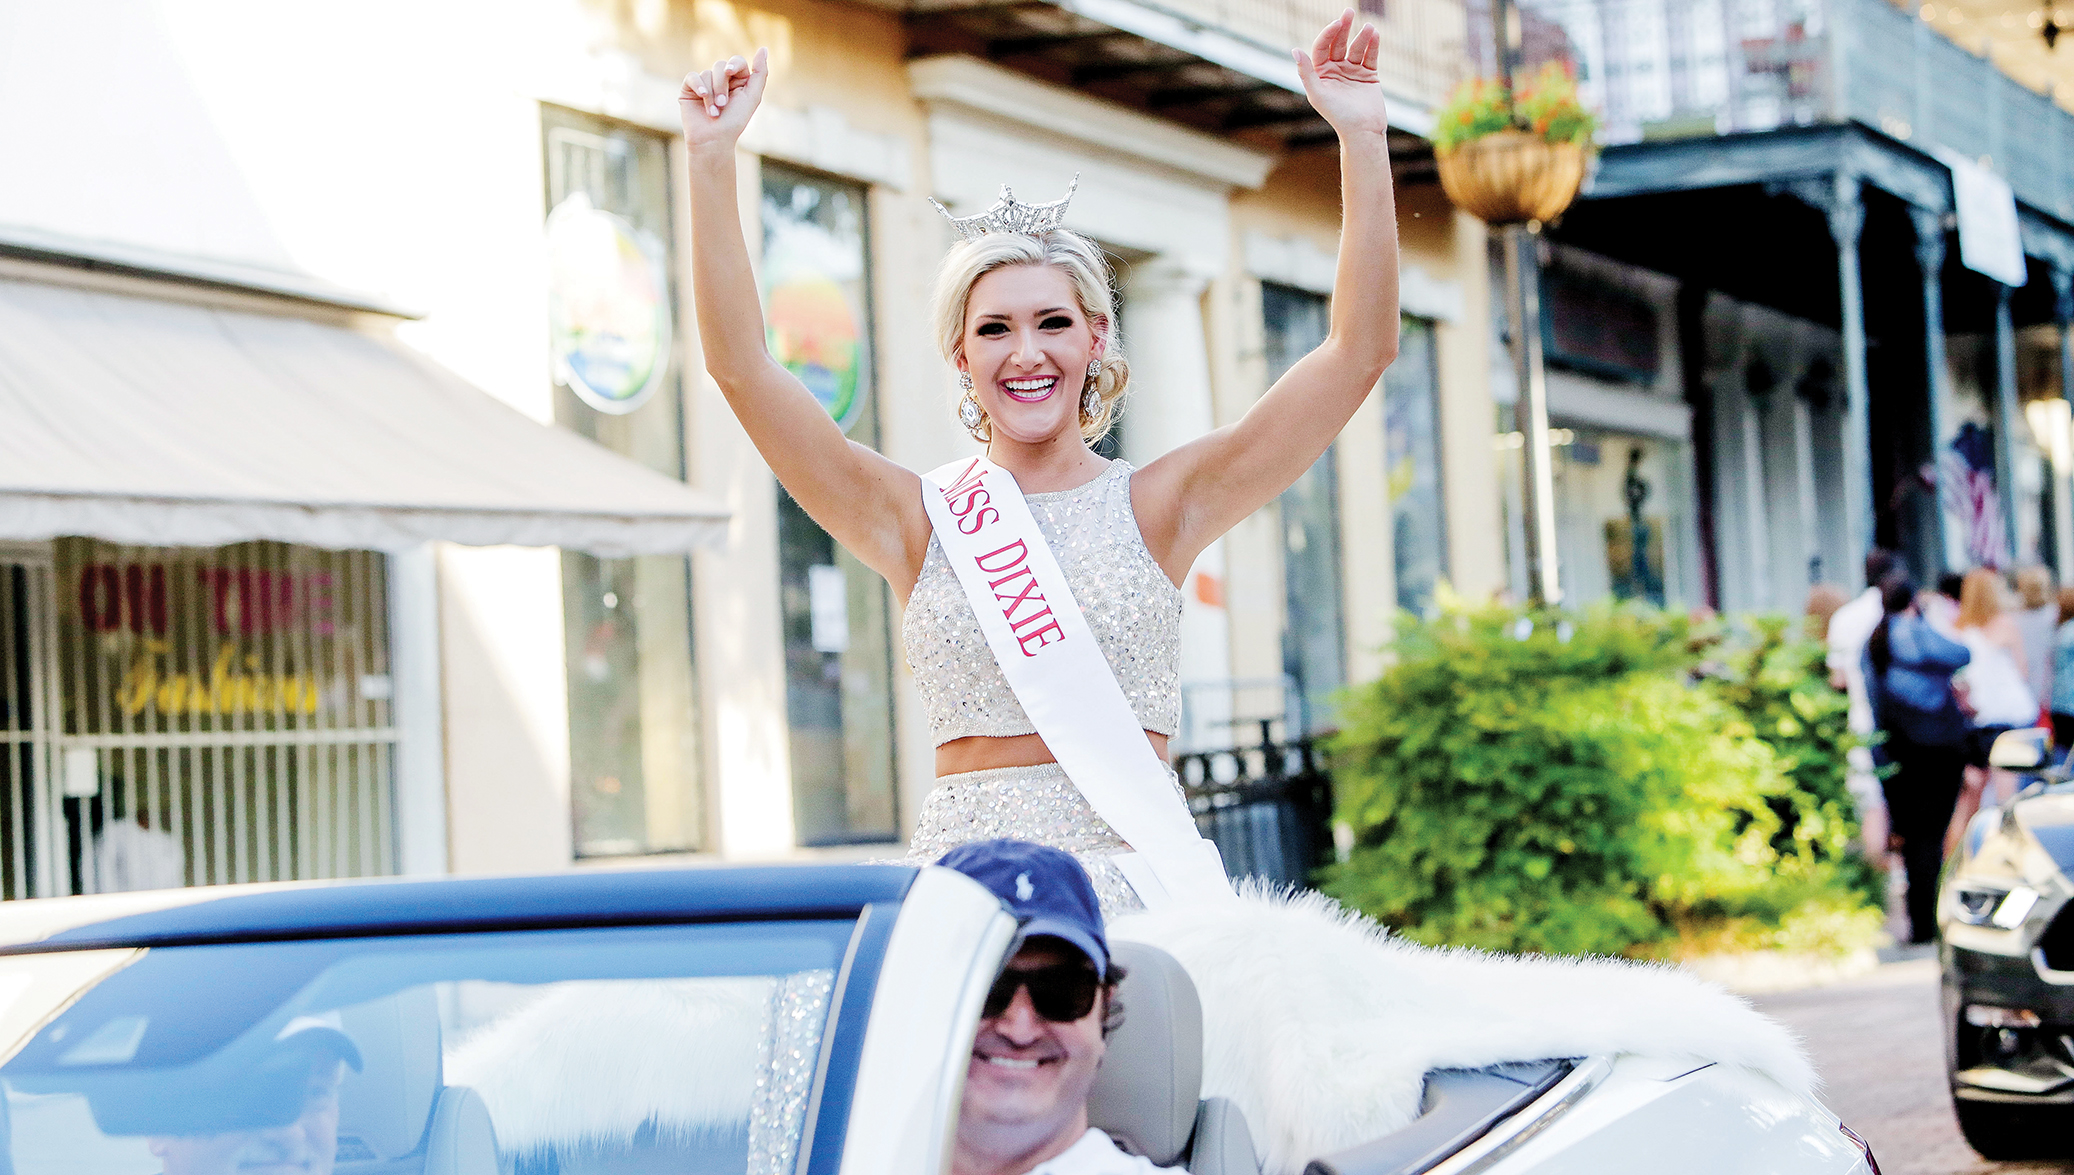 Photo by Alaina Denean Deshazo — The Vicksburg Post/Miss Dixie Laura Lee Lewis of Brookhaven waves to the crowds this week during the parade of Miss Mississippi pageant contestants. The pageant begins tonight in Vicksburg, where Lee's group will compete in the talent portion of the competition.